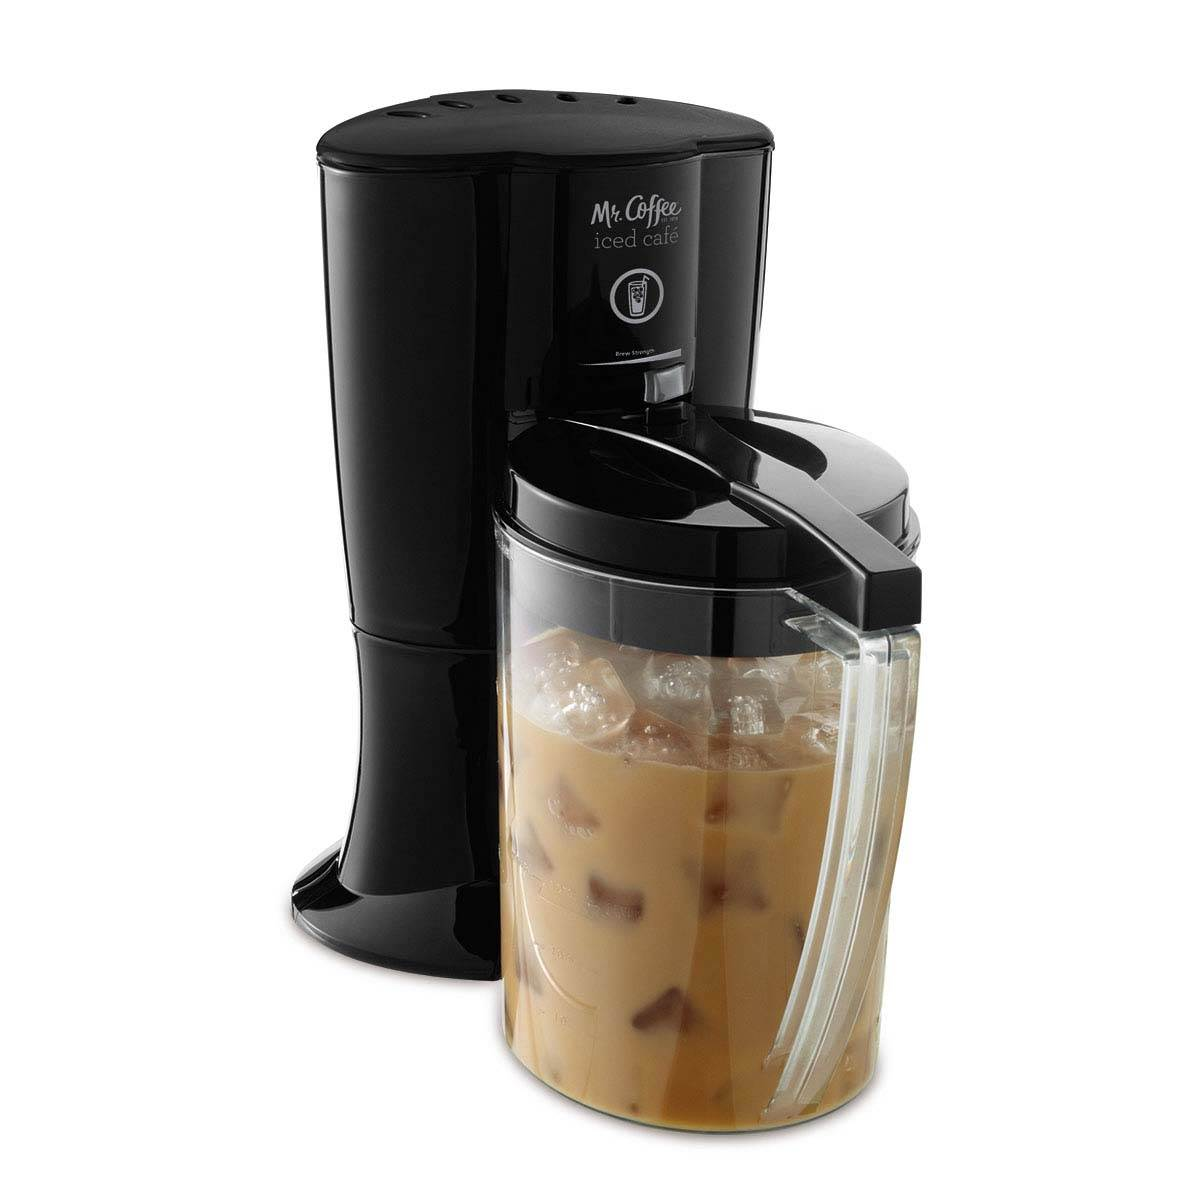 Mr. Coffee BVMC-LV1 Iced Cafe Iced Coffee Maker, Black ...